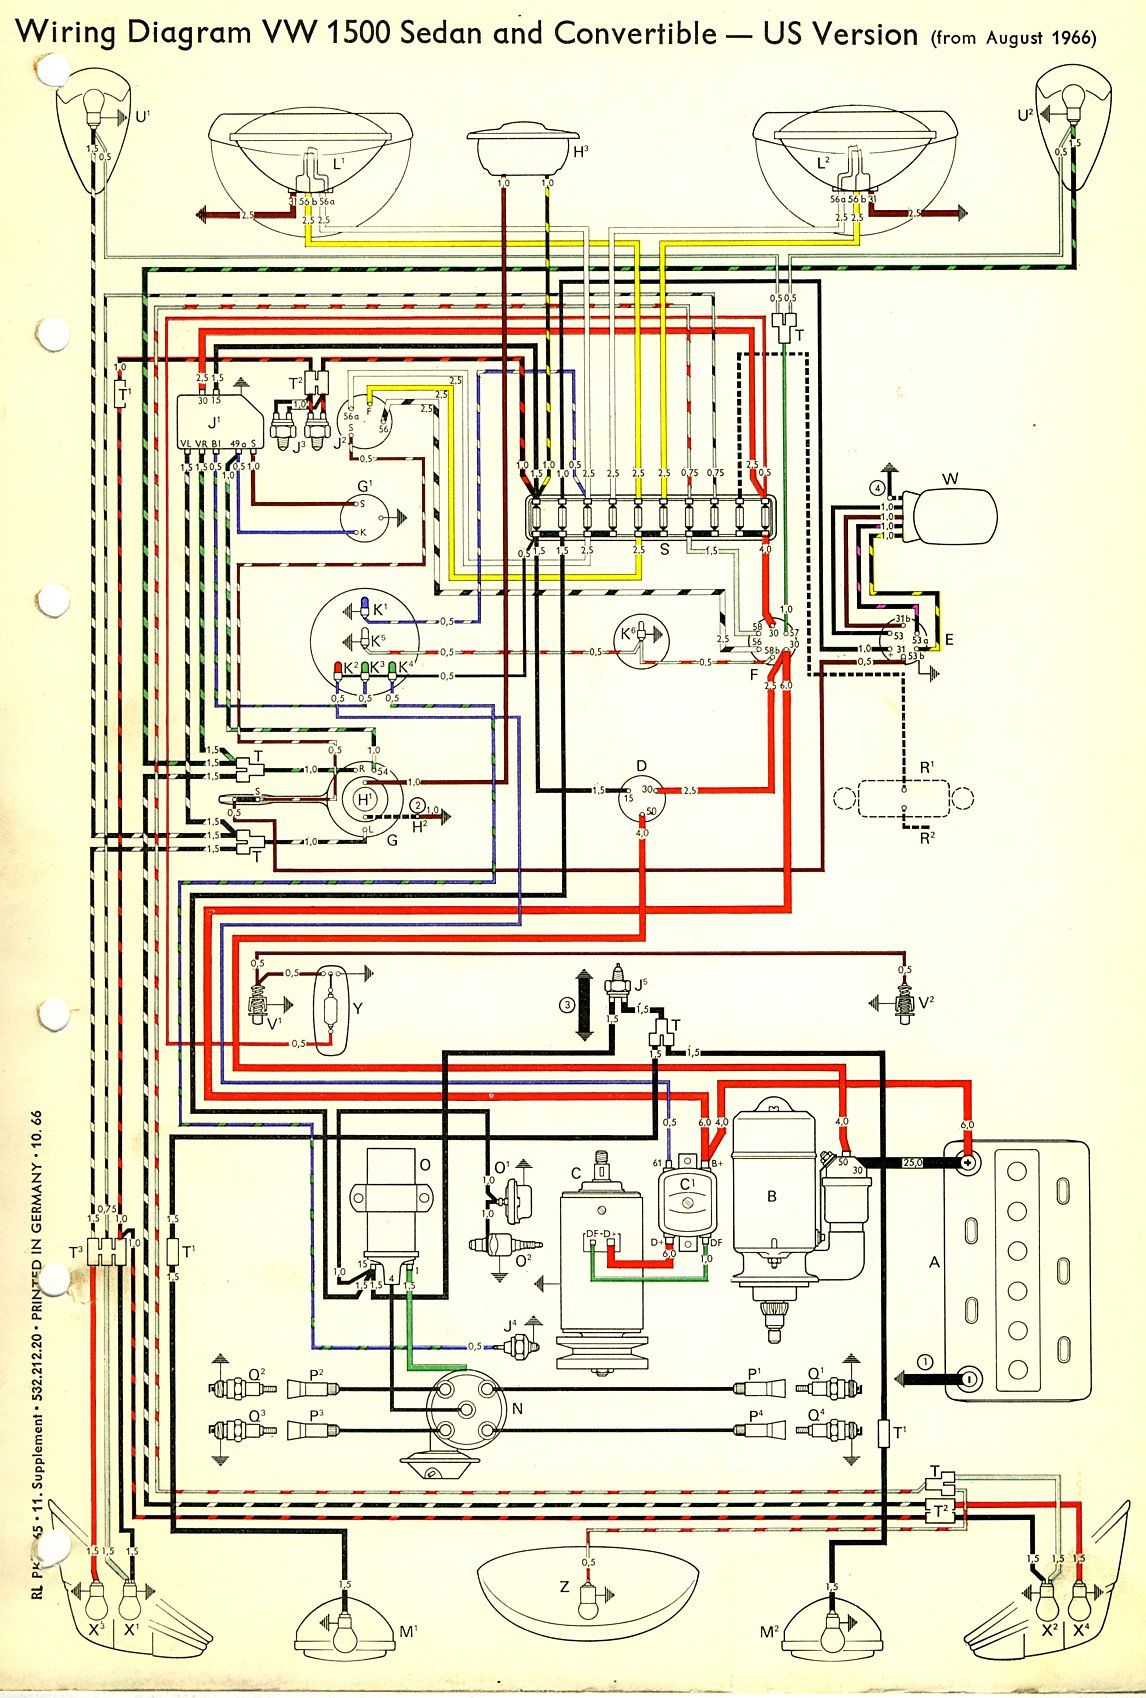 medium resolution of 1967 beetle wiring diagram usa thegoldenbug com best 1967 vw rh pinterest com chevy s10 speedometer